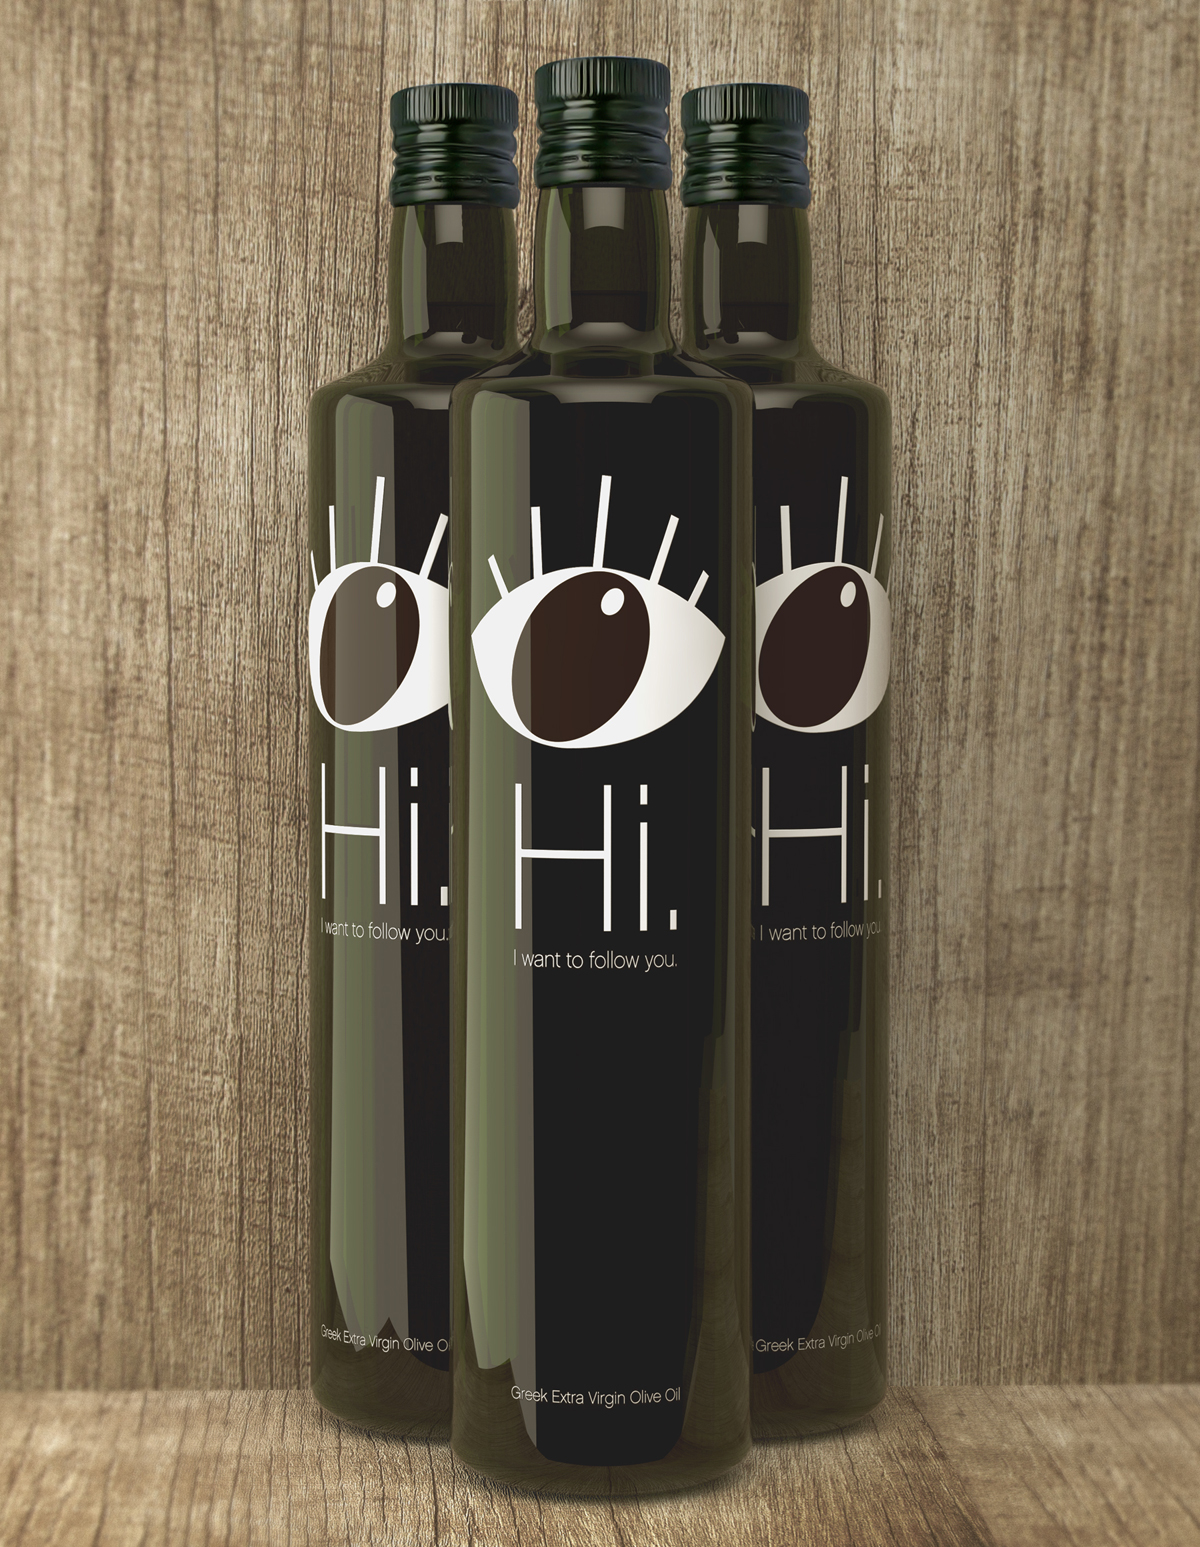 matadog_hi_olive_oil_packaging_04